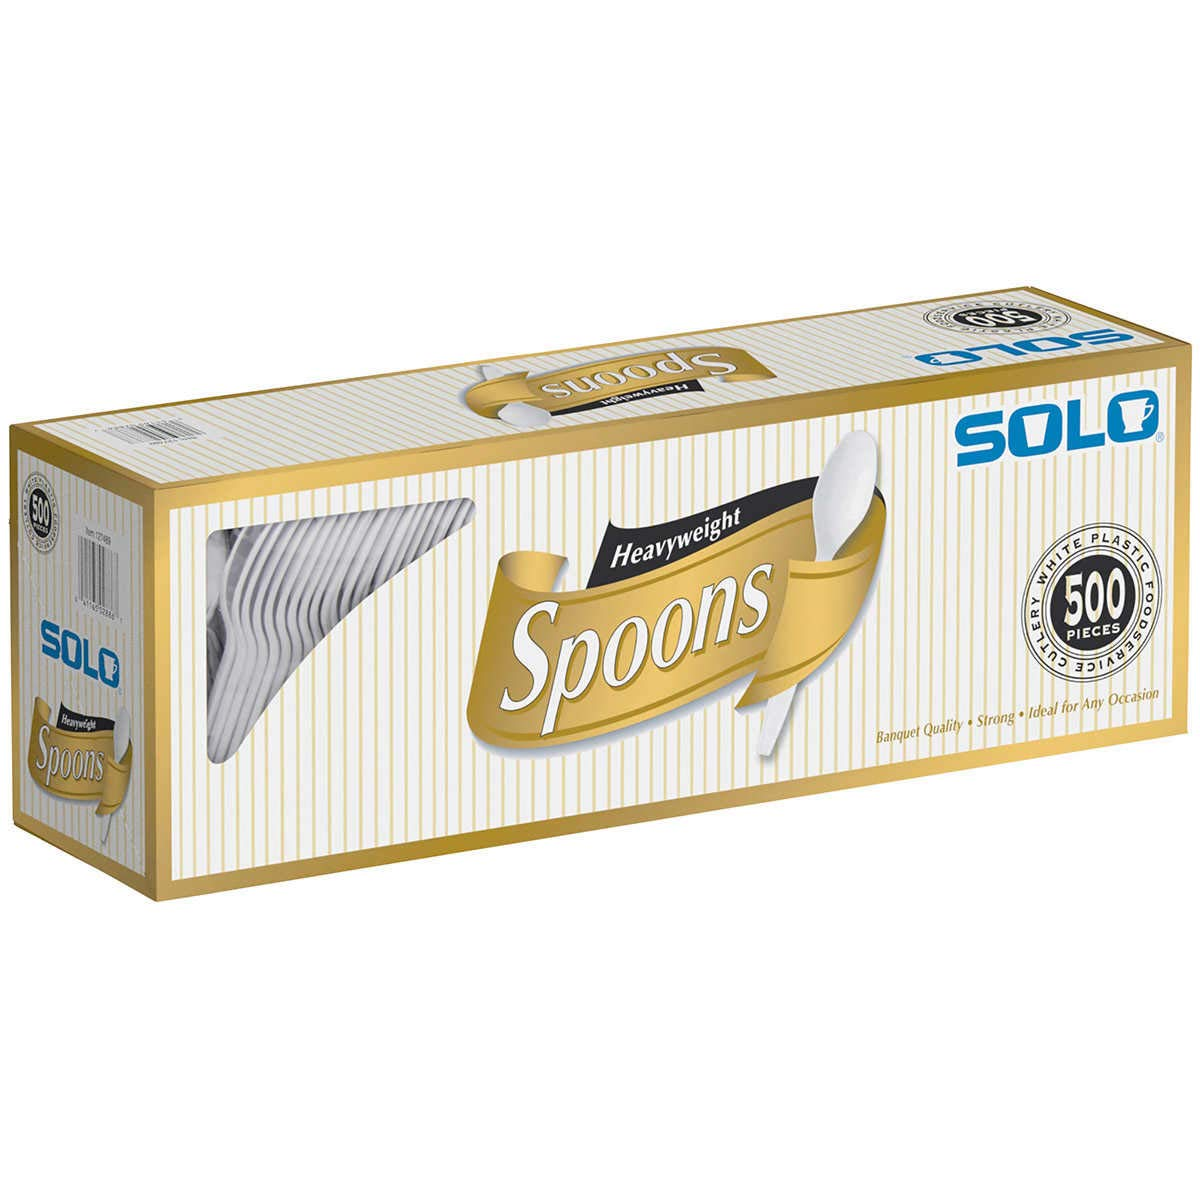 Solo Plastic Spoon White 500ct, Pack of 1, spoons-500